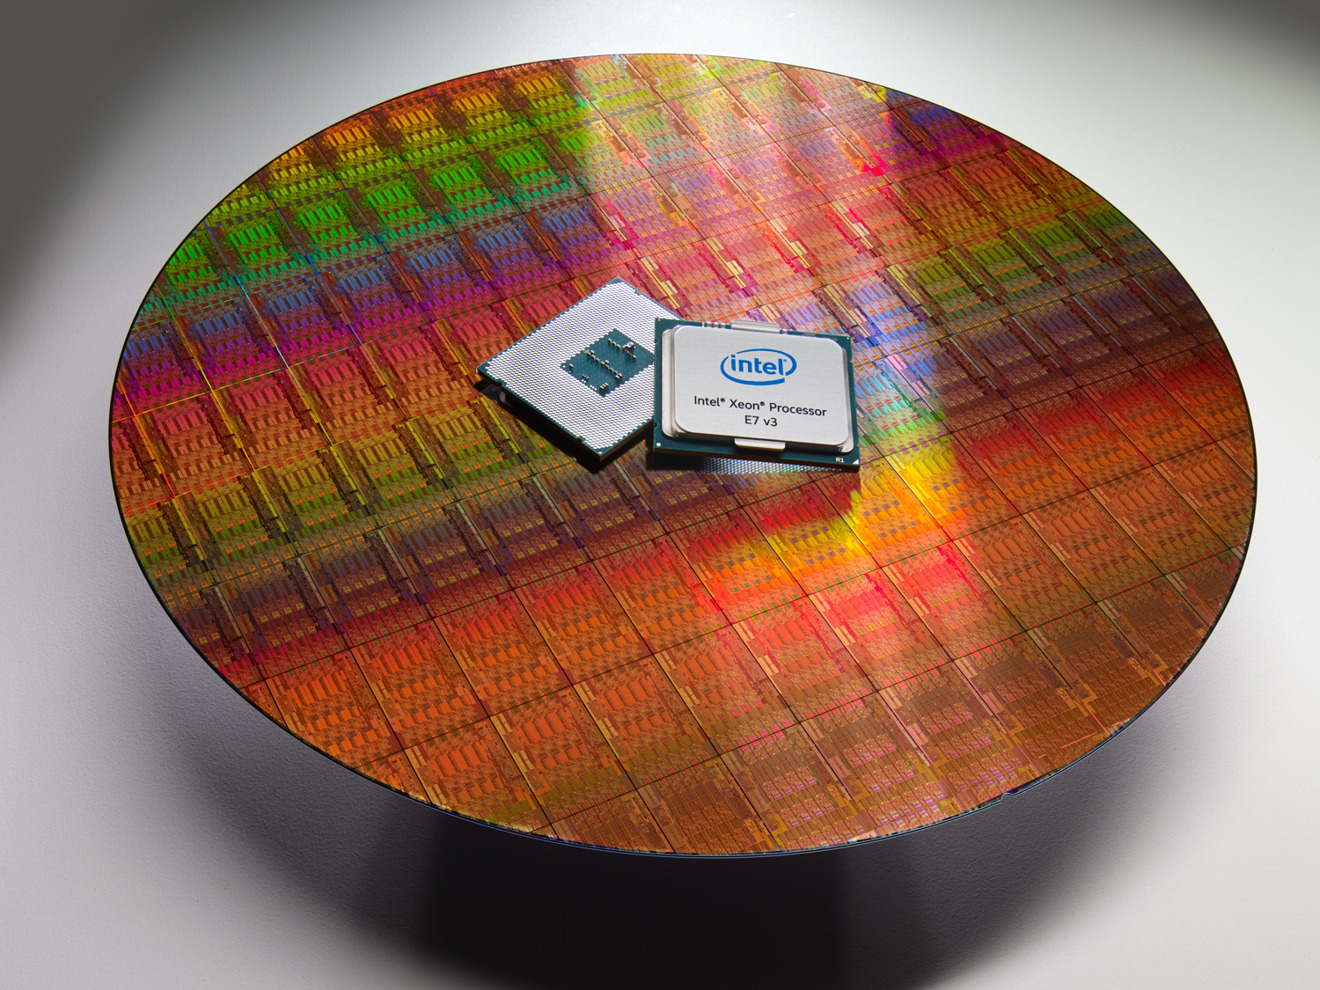 An example of a wafer used to produce Intel's Xeon E7 processor in 2015, with the processor itself for scale.